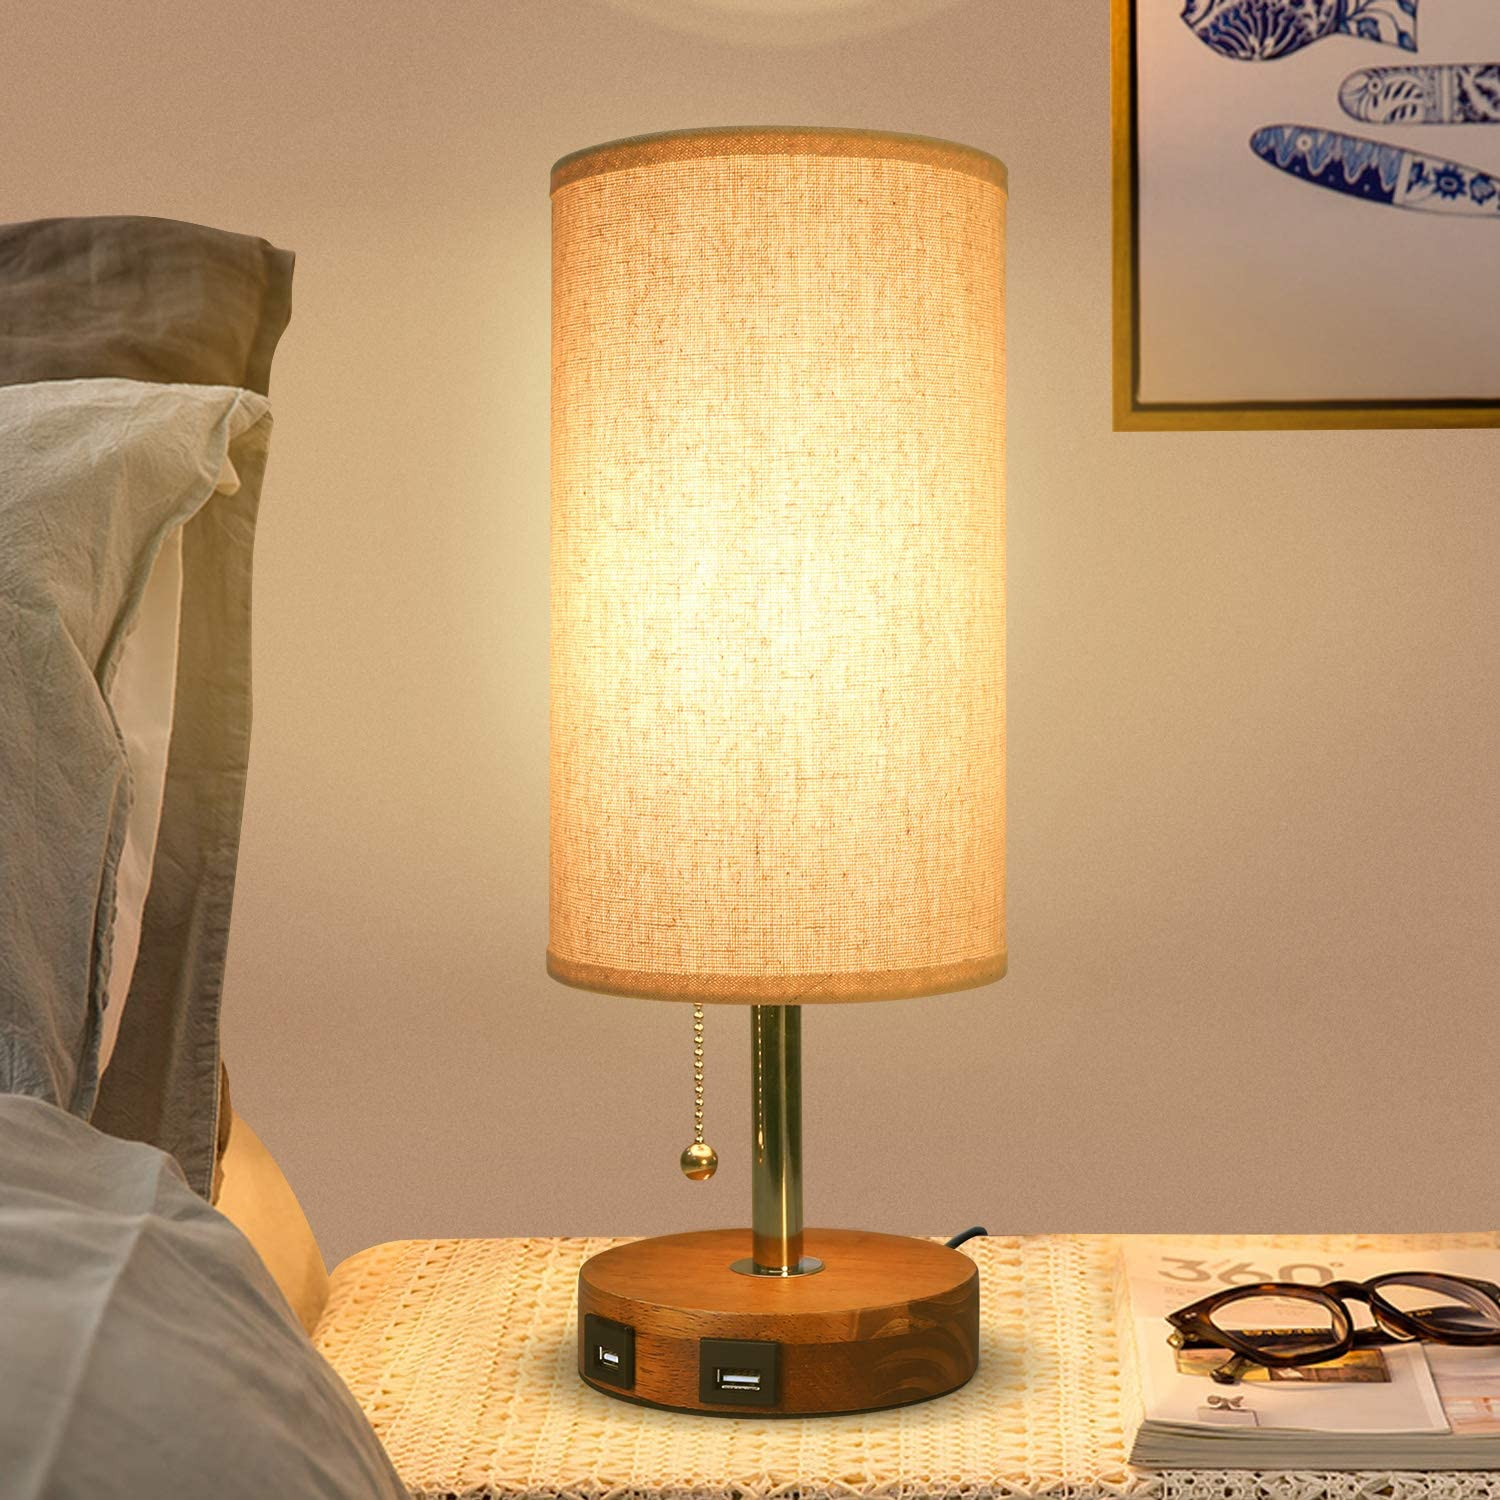 Dual USB Table Lamp, Wooden Base